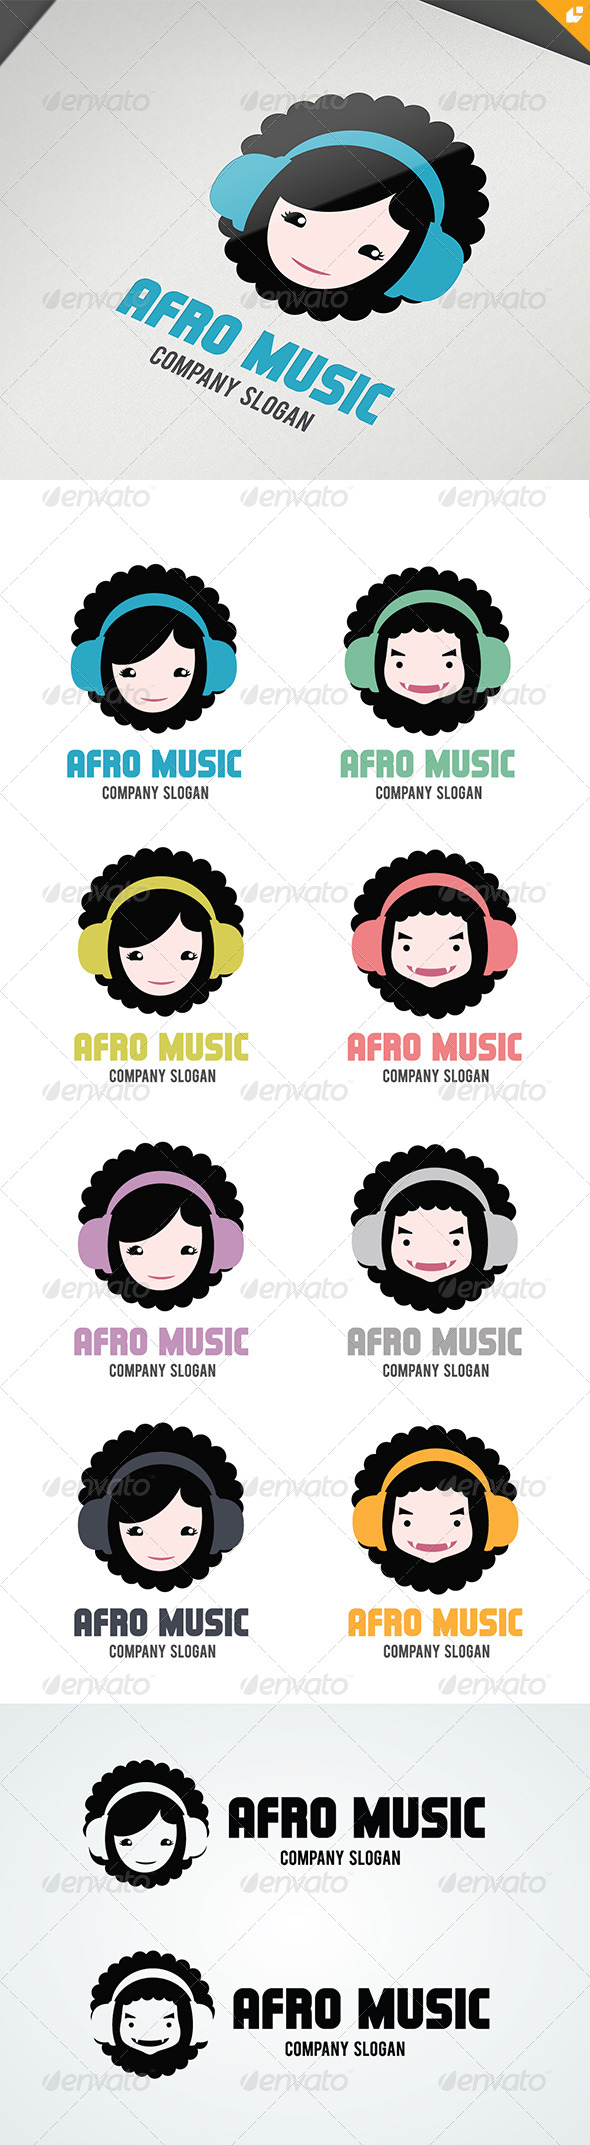 GraphicRiver Afro Music Logo 4791003